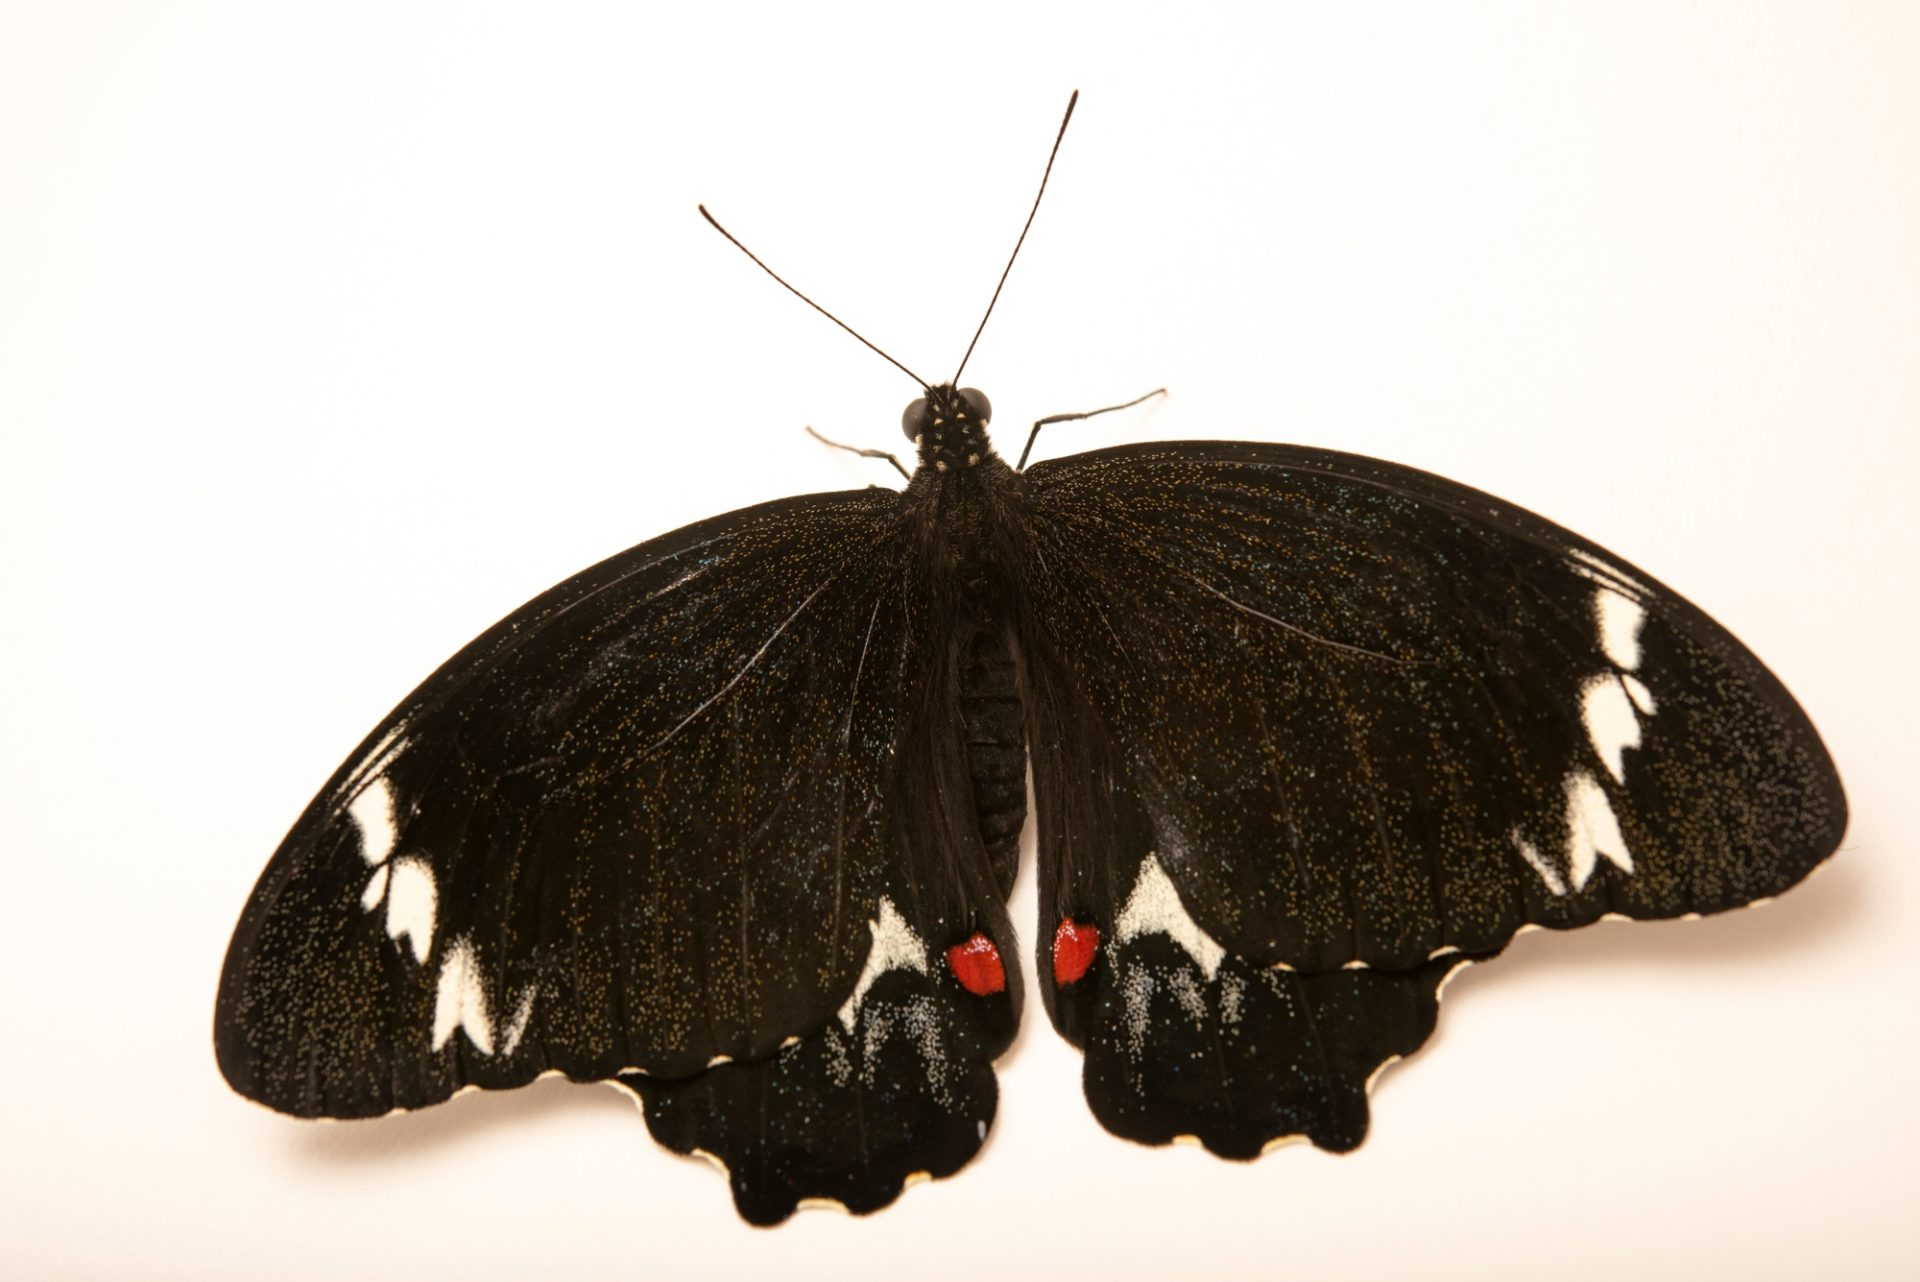 Photo: Orchard butterfly (Papilio aegeus) at Melbourne Zoo. This is a male.